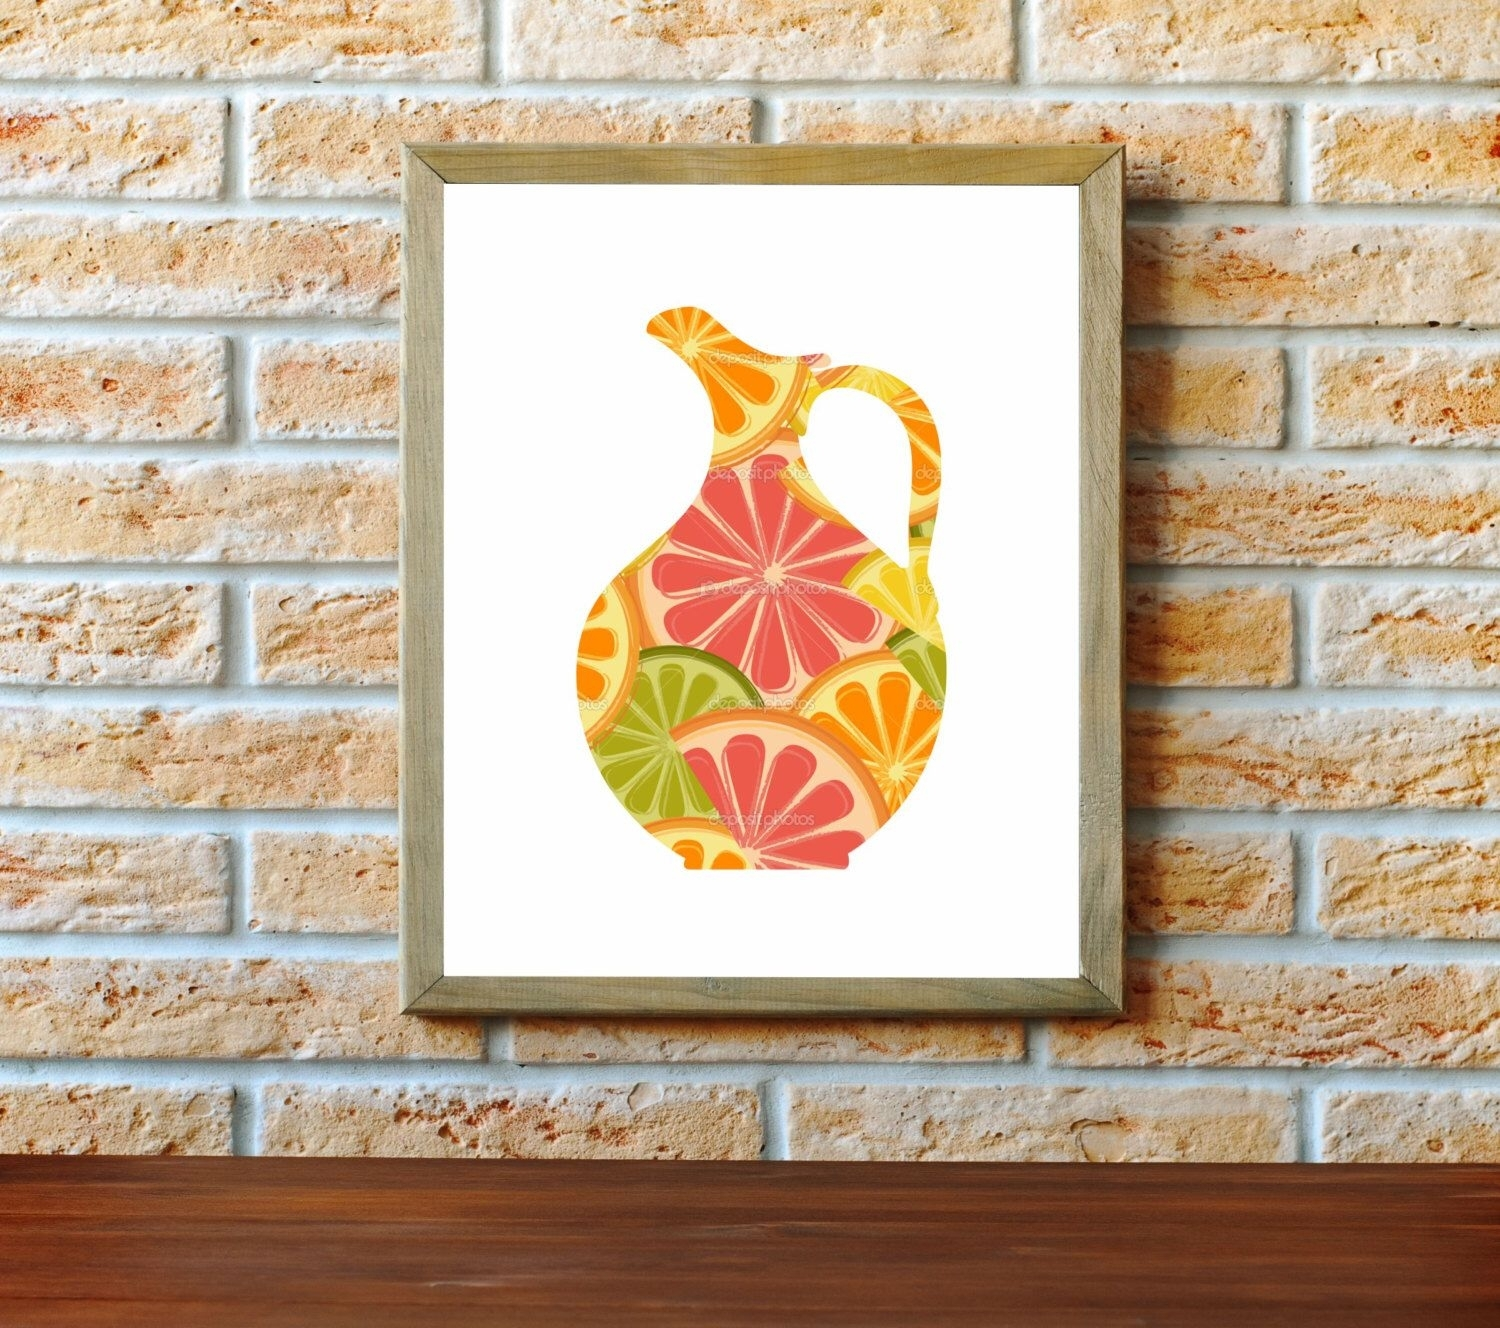 Kitchen Art Print, Dining Wall Decor, Orange Lemon & Lime, Kitchen Throughout Best And Newest Lemon Wall Art (View 9 of 20)